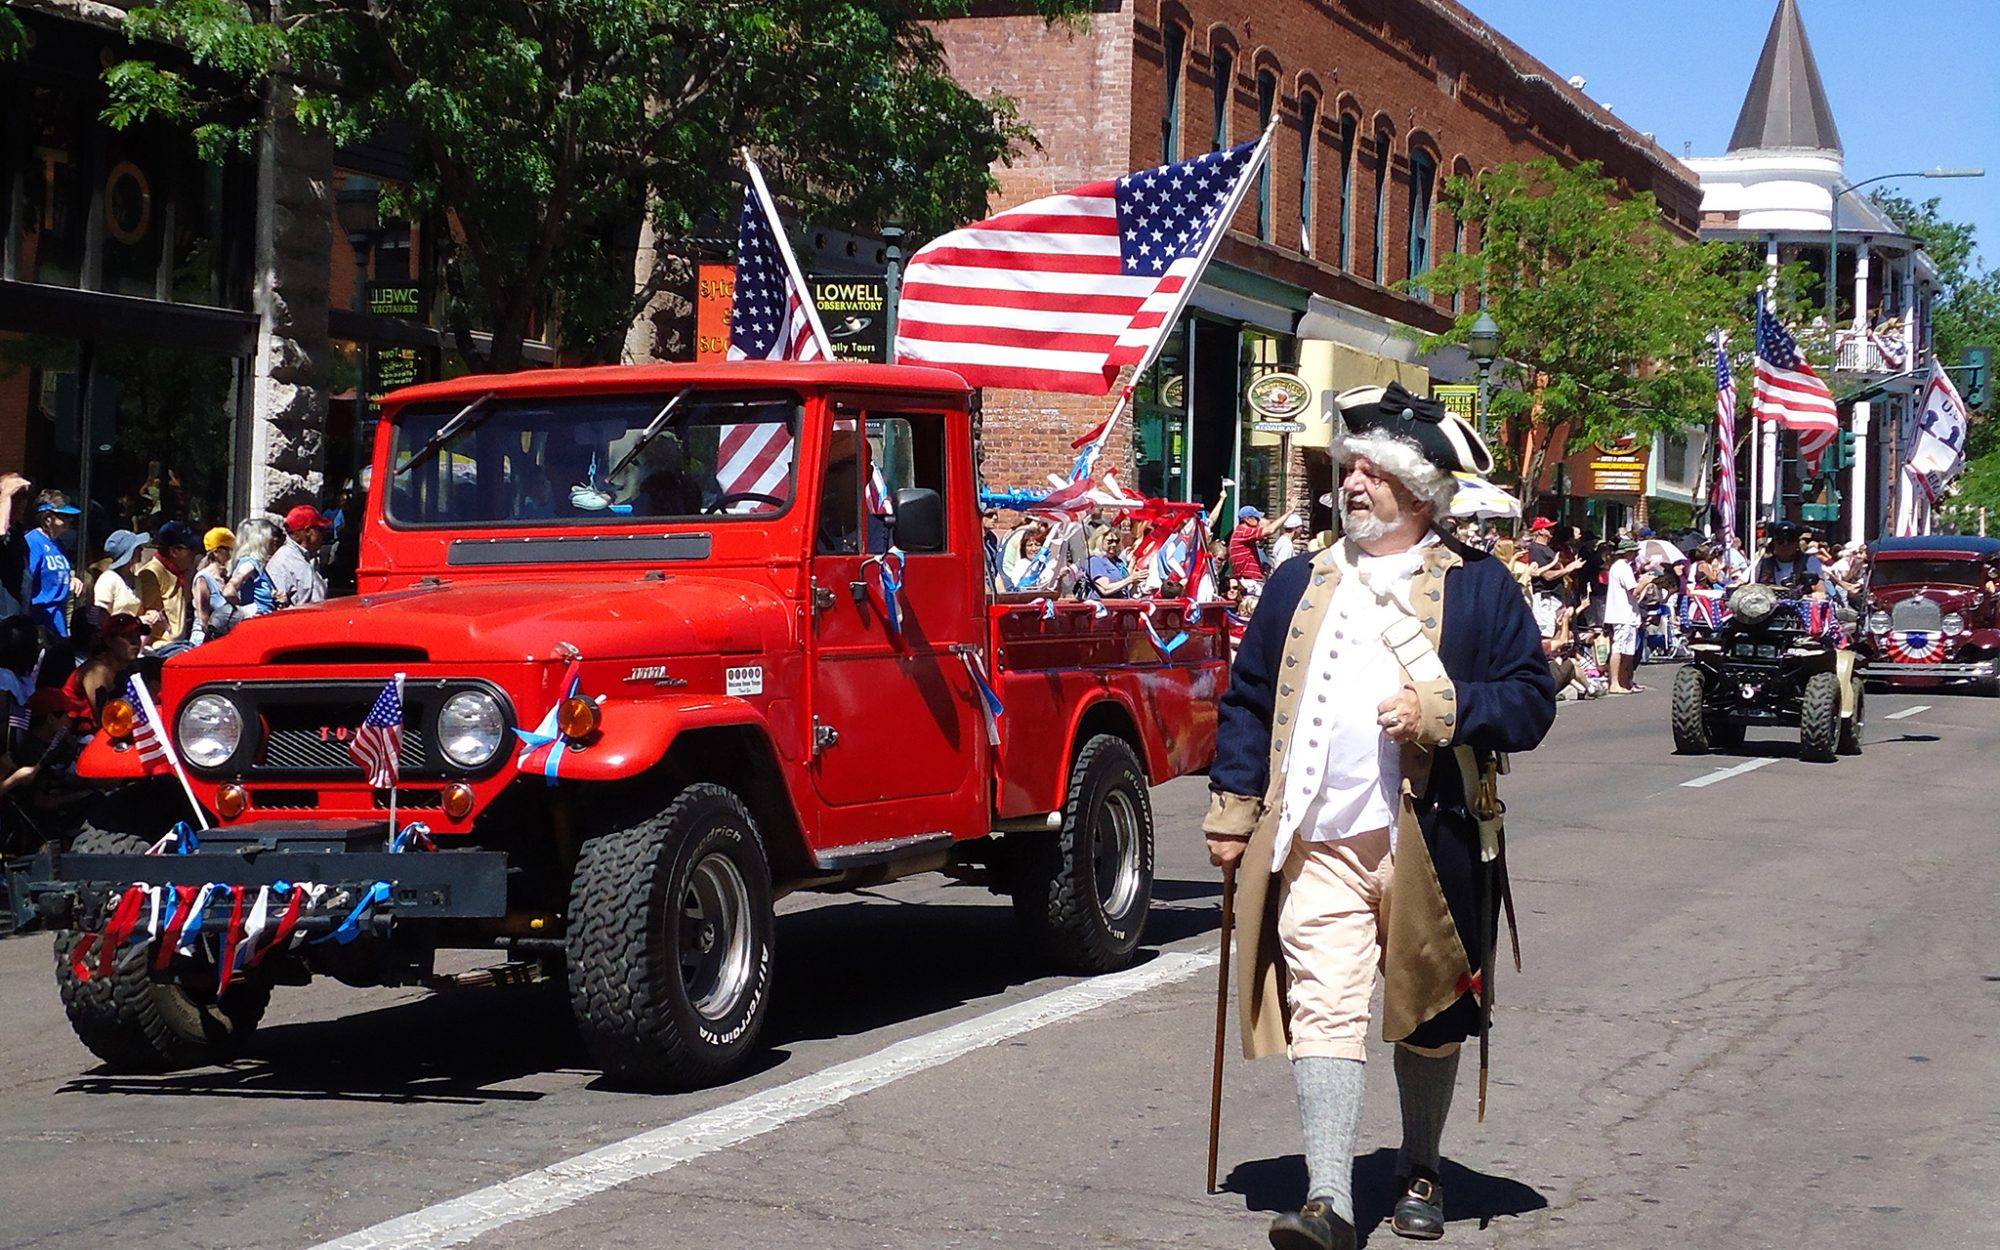 America's Best Towns for July 4th: Flagstaff